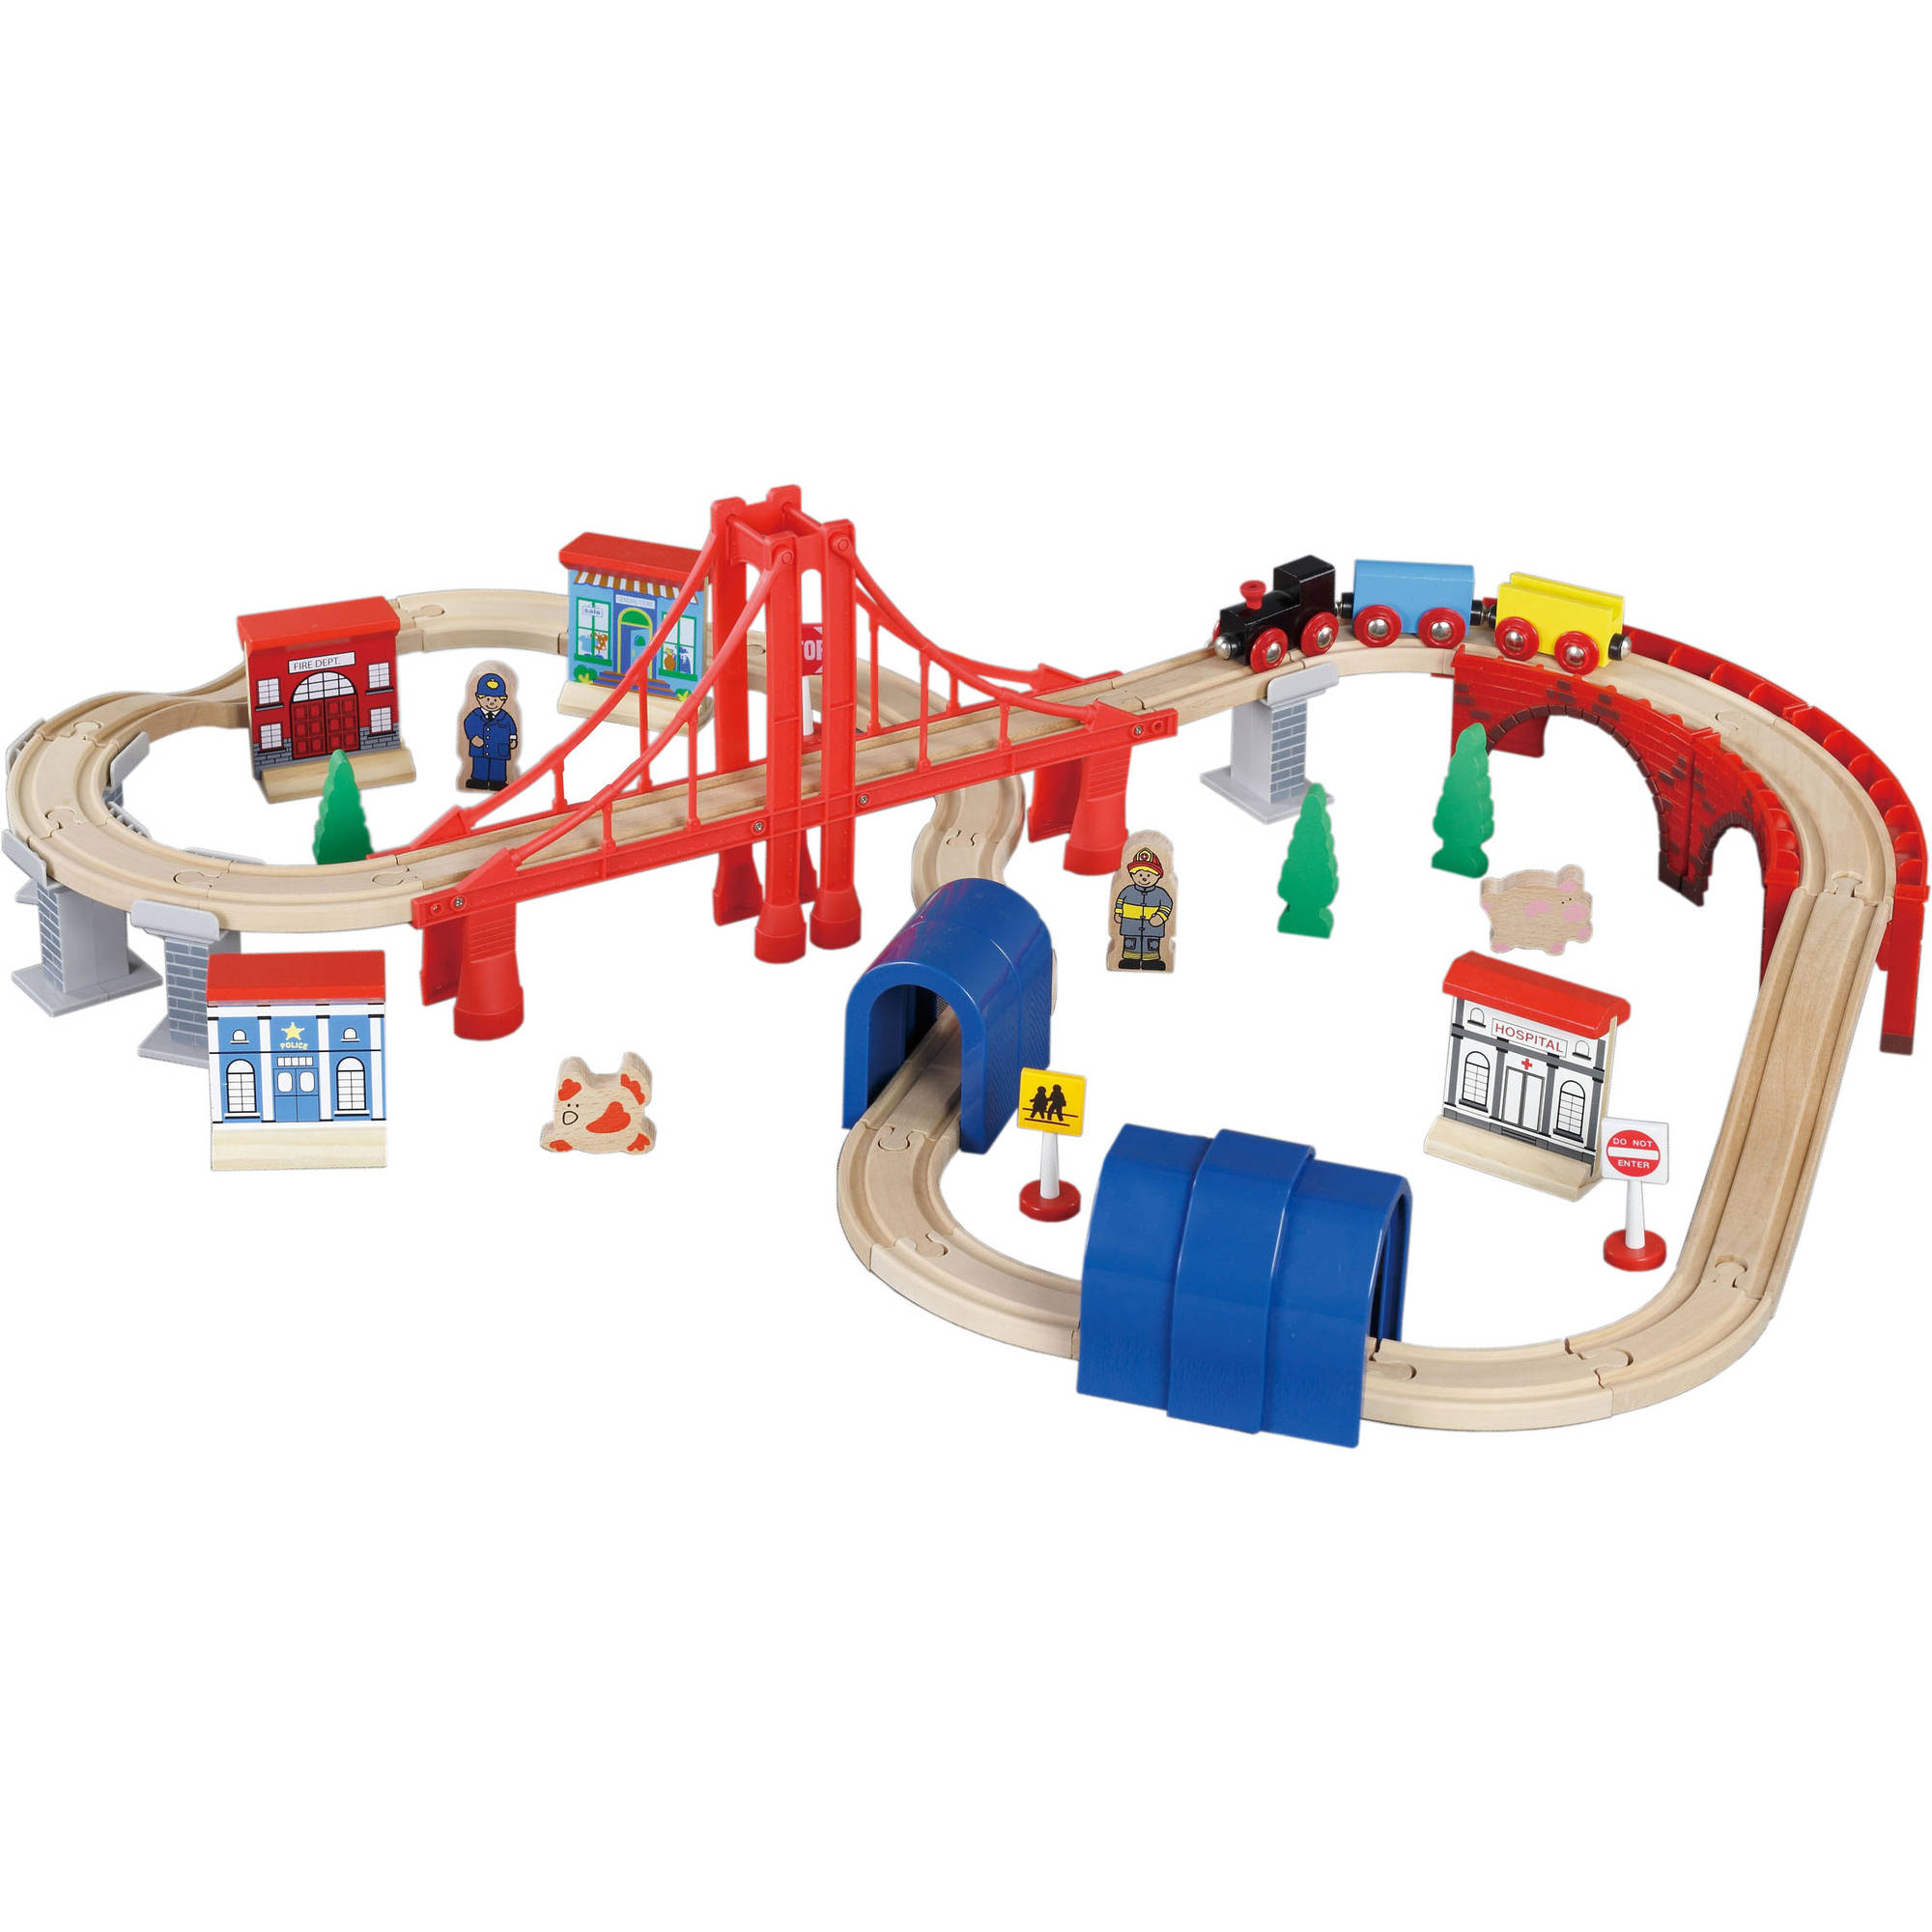 Bridge & Tunnel Wooden Train Set, 60 pieces